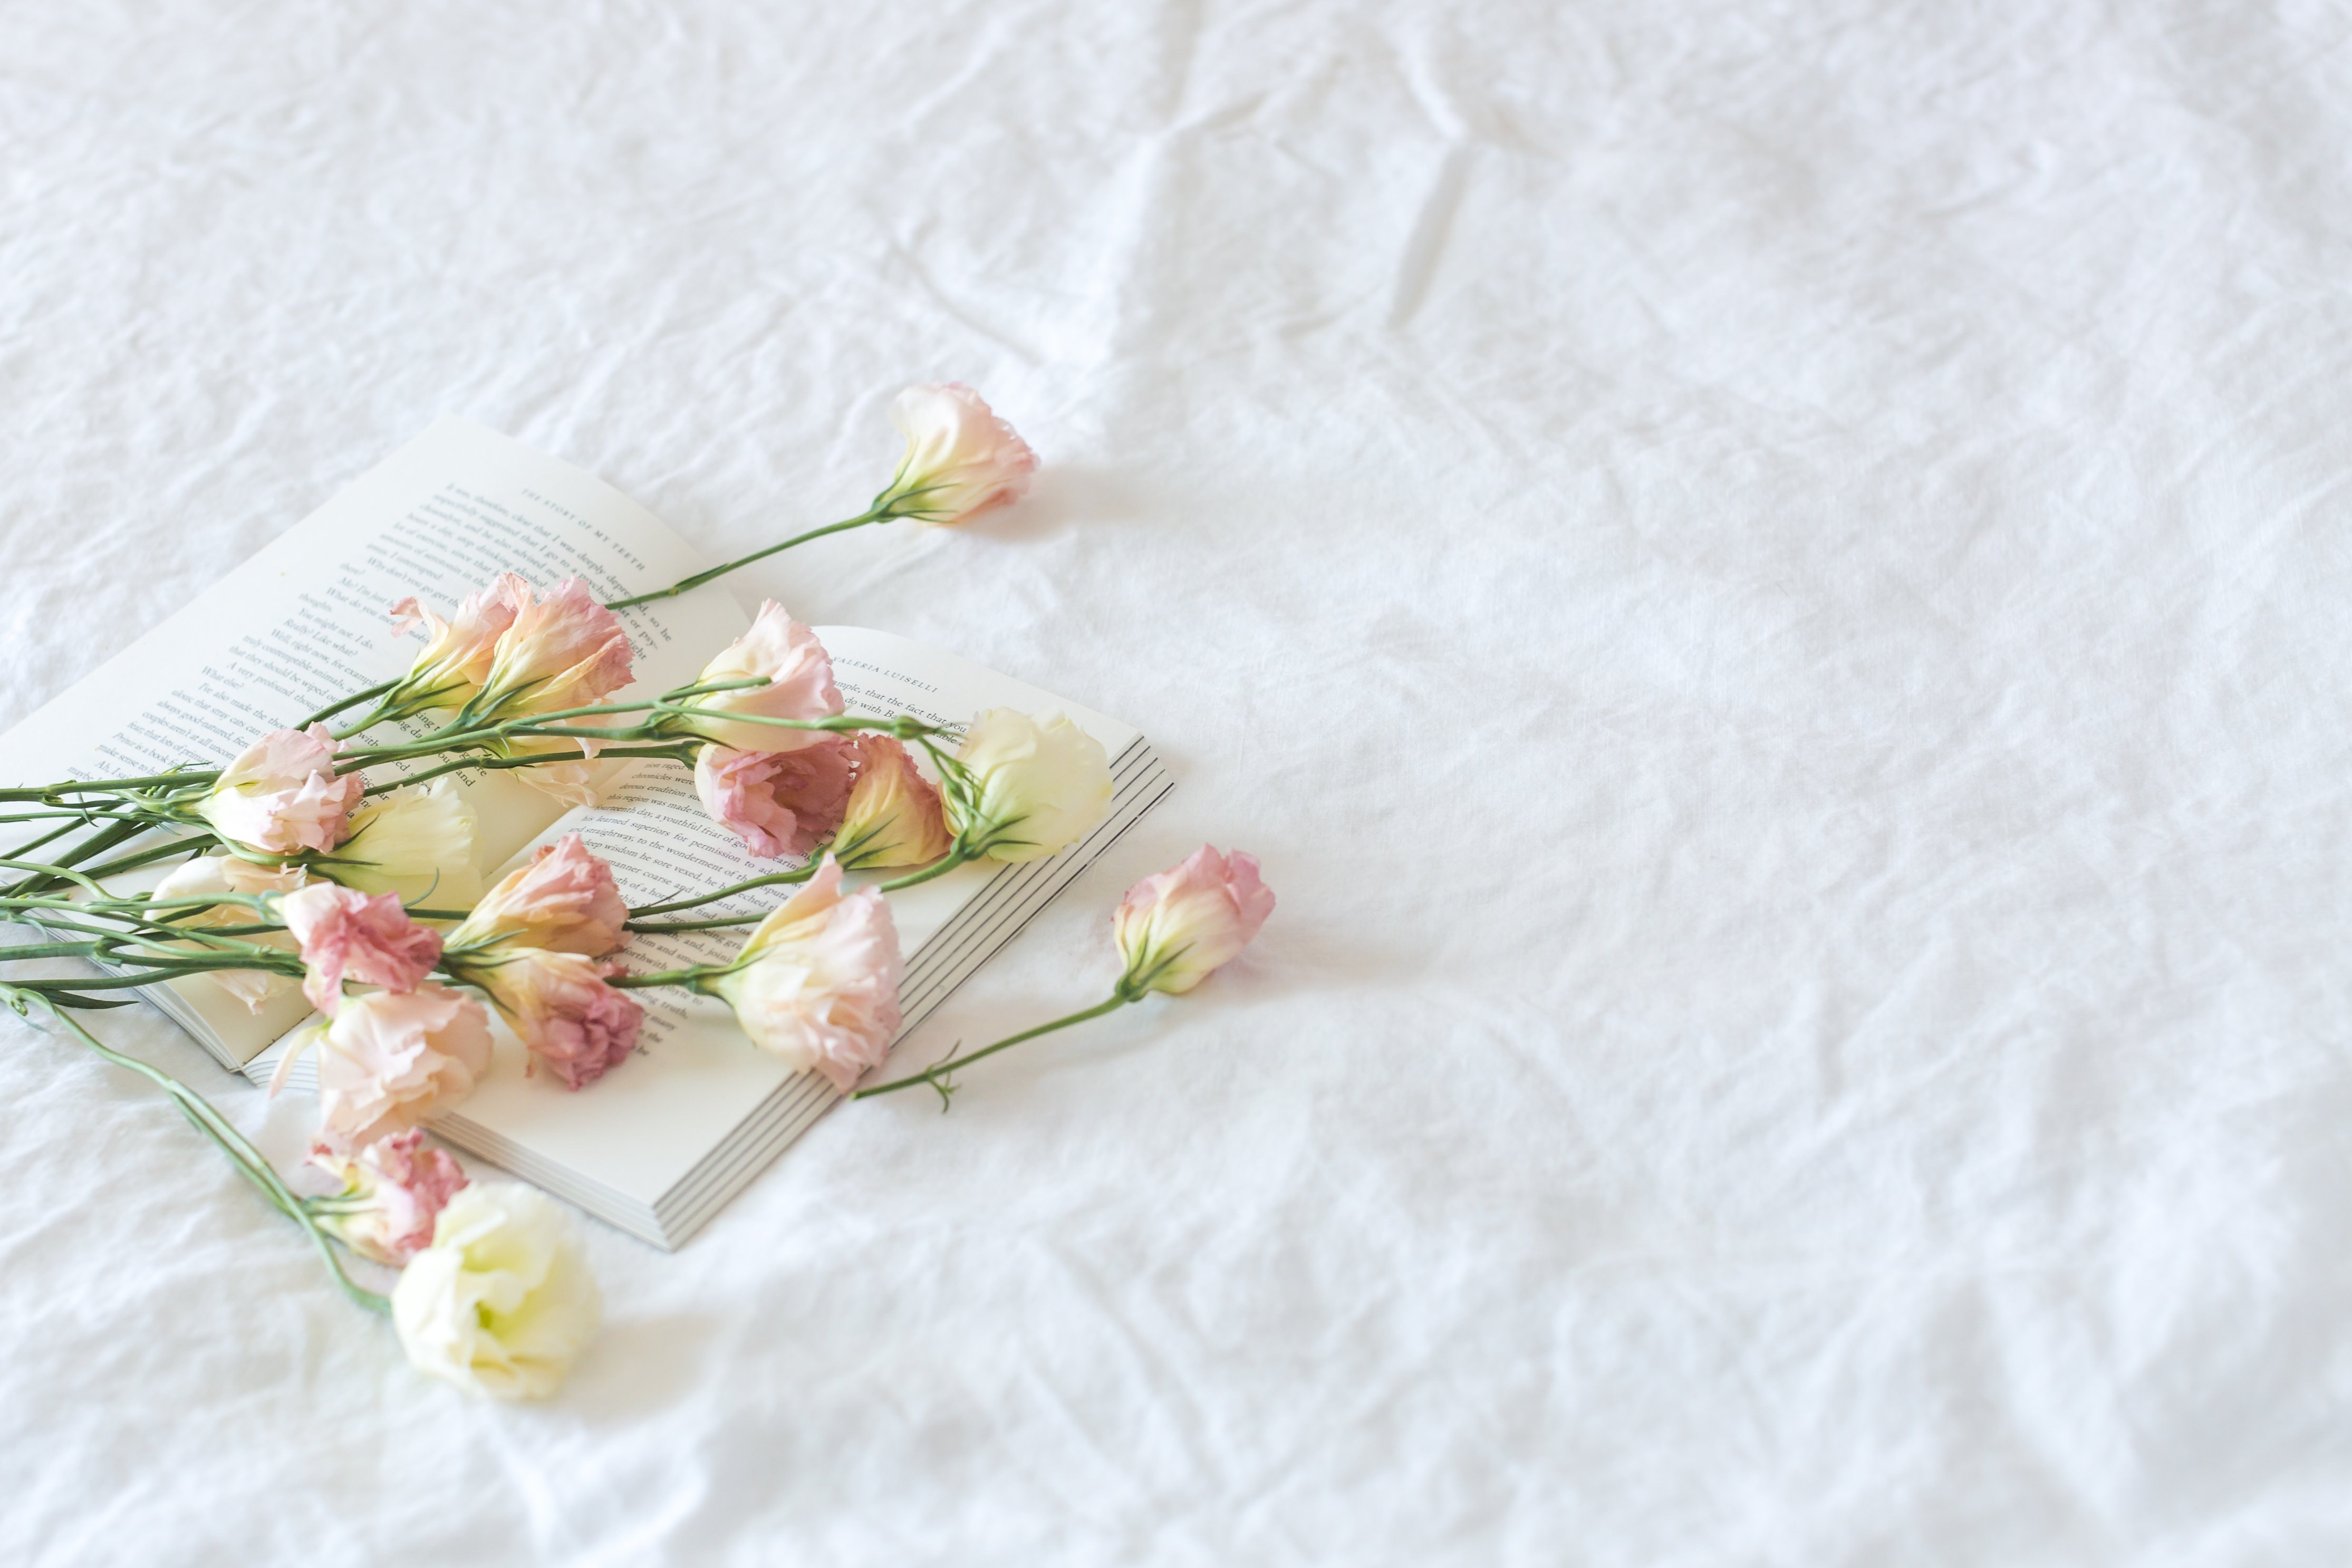 Rose Flower Scattered On The Book, Several Flowers - Happy Friendship Day With Flowers - HD Wallpaper